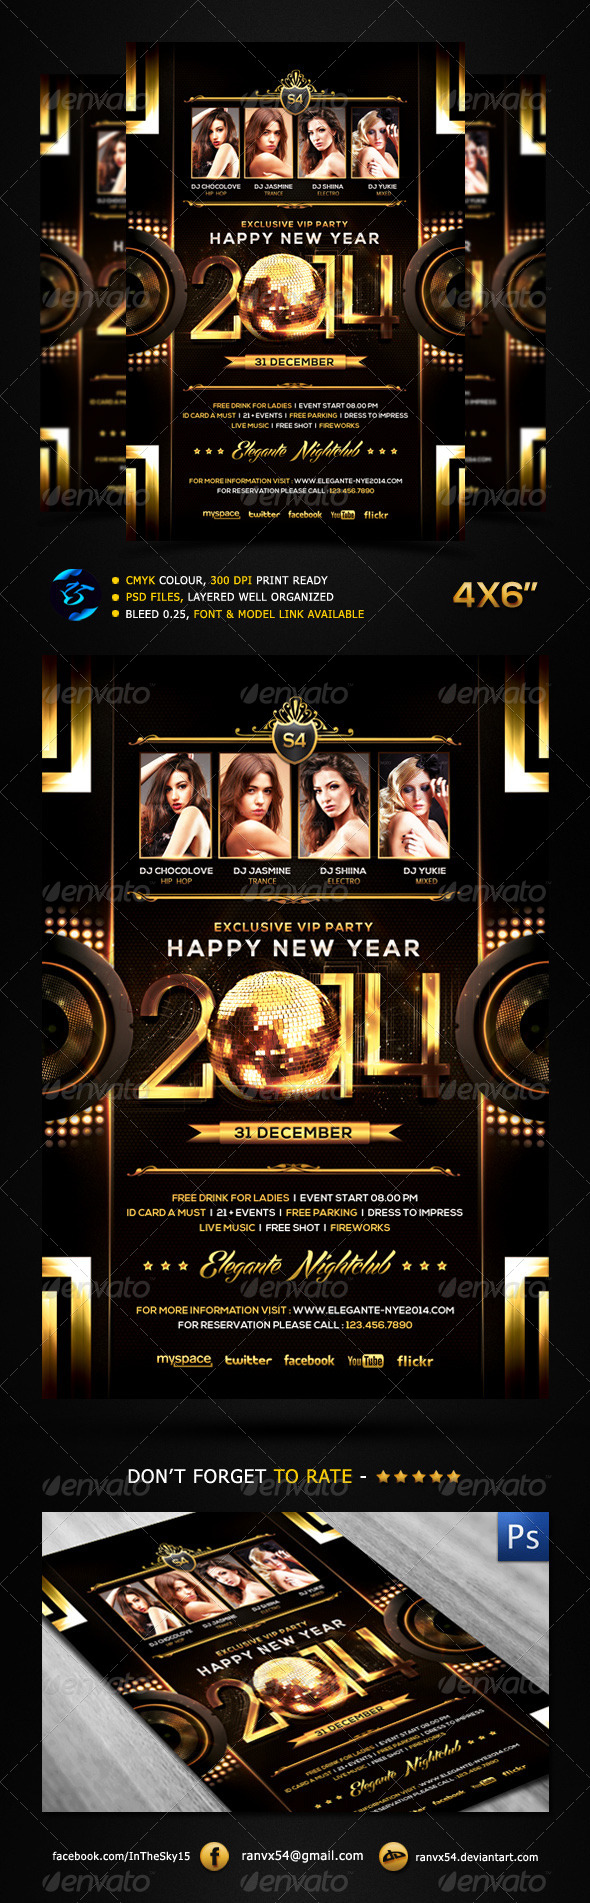 New Year 2014 Flyer Template - Events Flyers